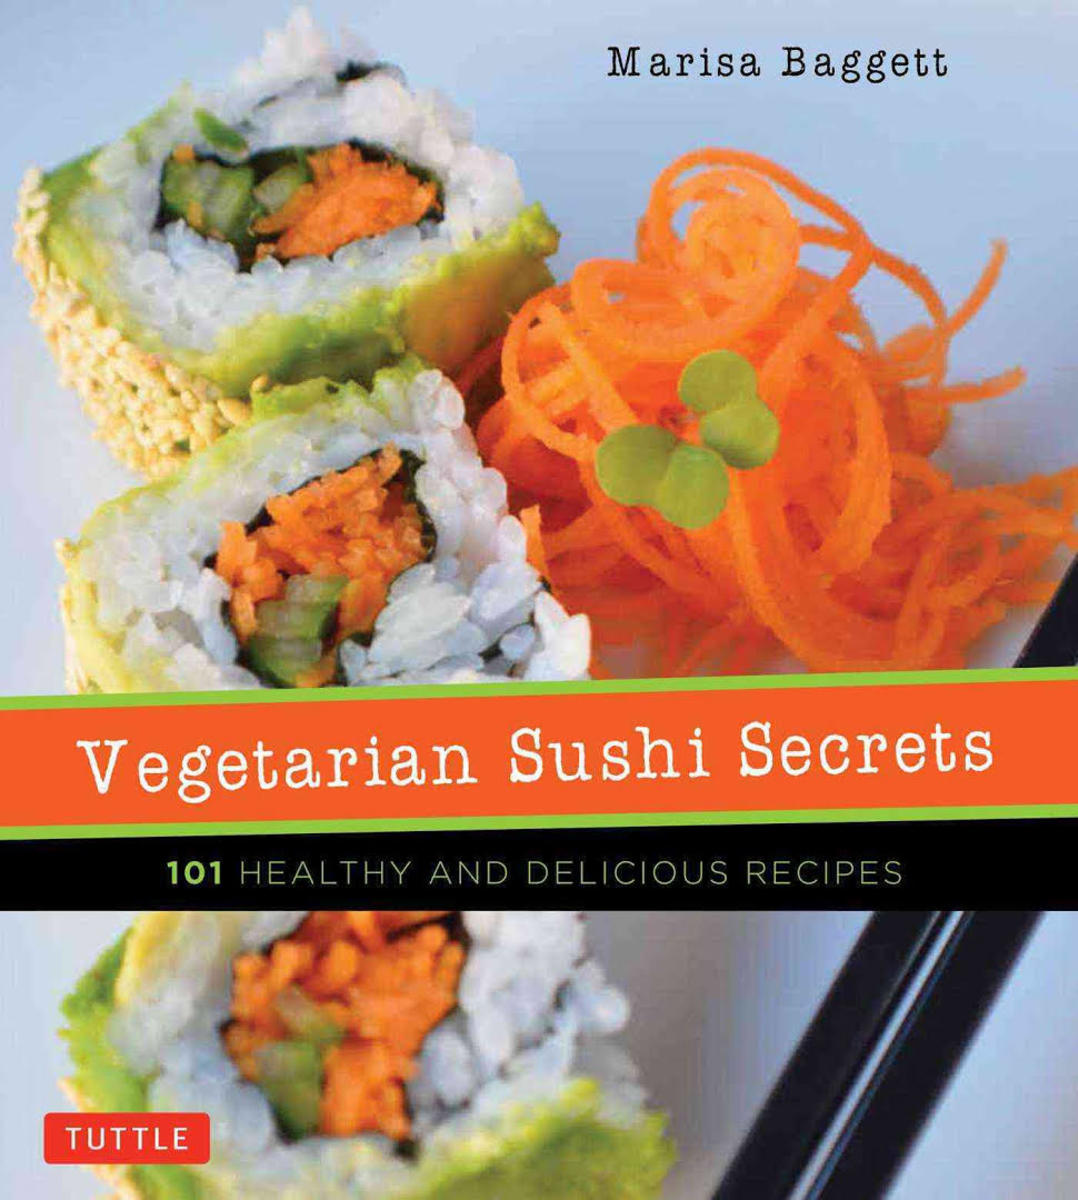 Vegetarian Sushi Secrets cover photo.jpg